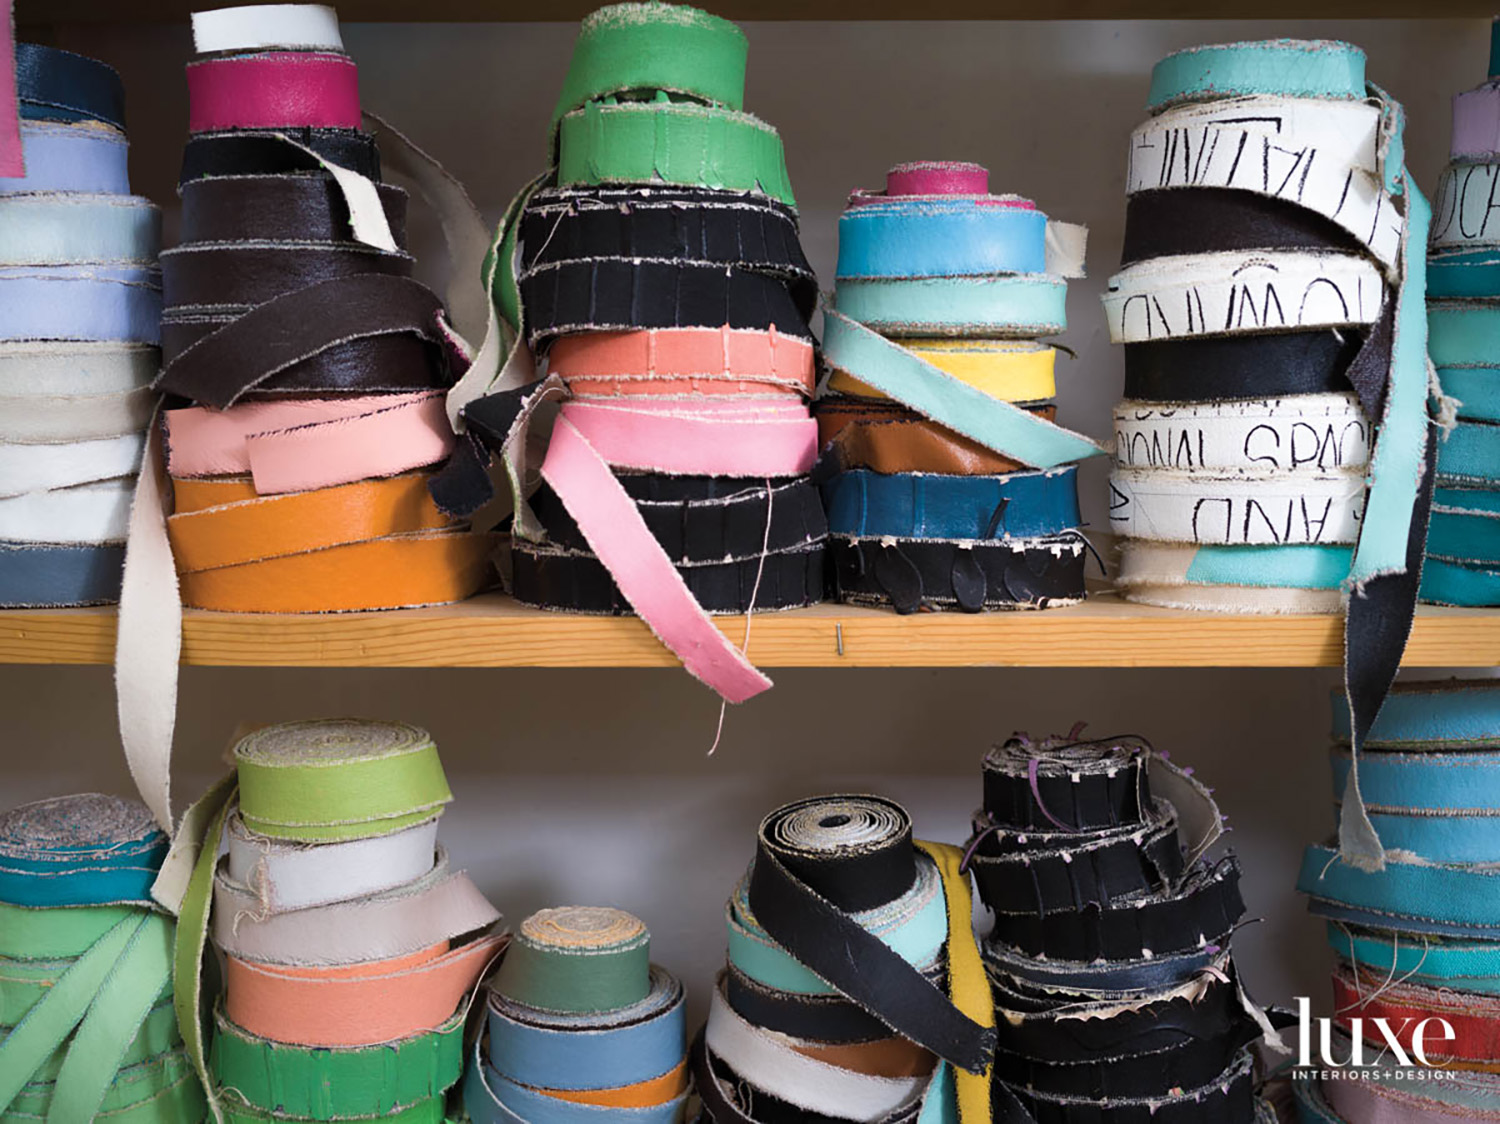 Shelves with spools of colored canvas strips.